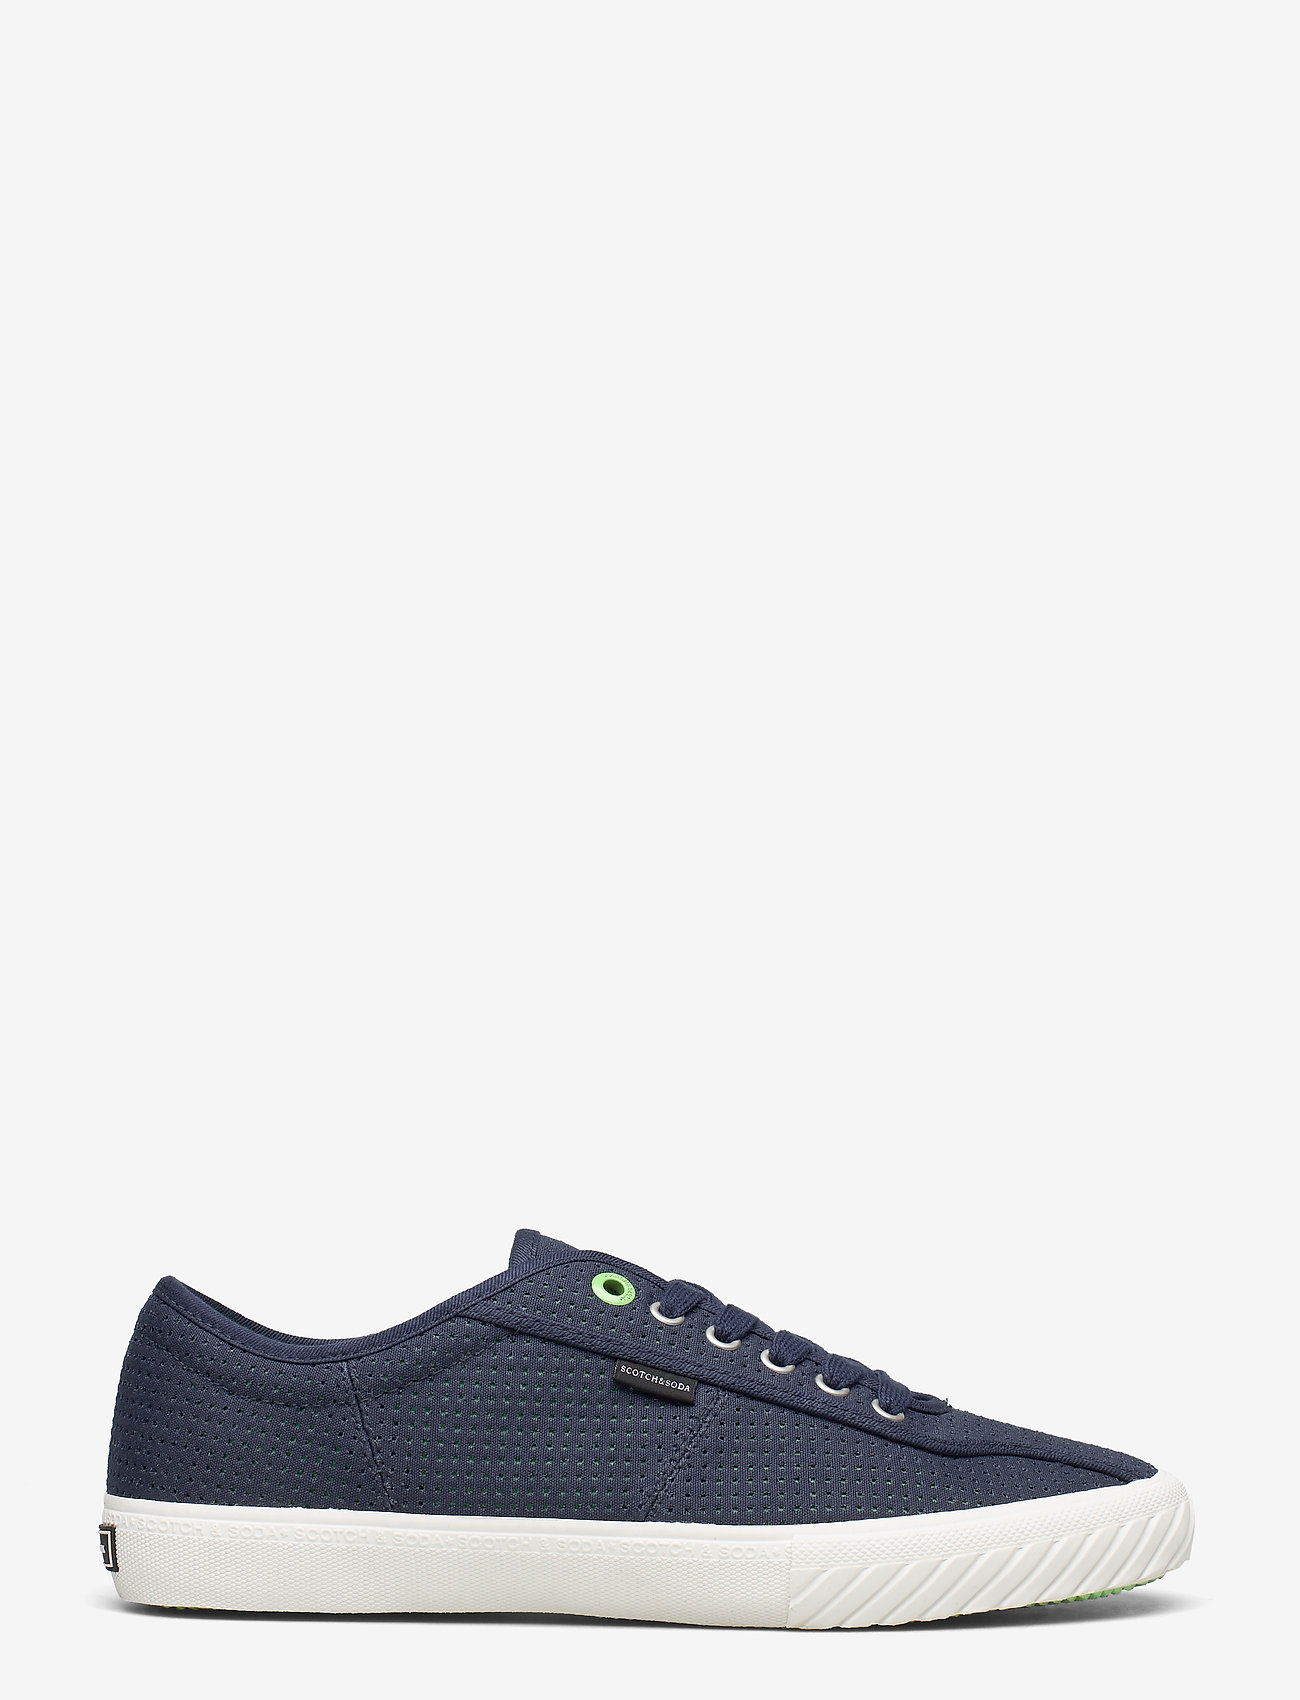 Scotch & Soda Shoes - Parcifal Low lace - low tops - marine - 1